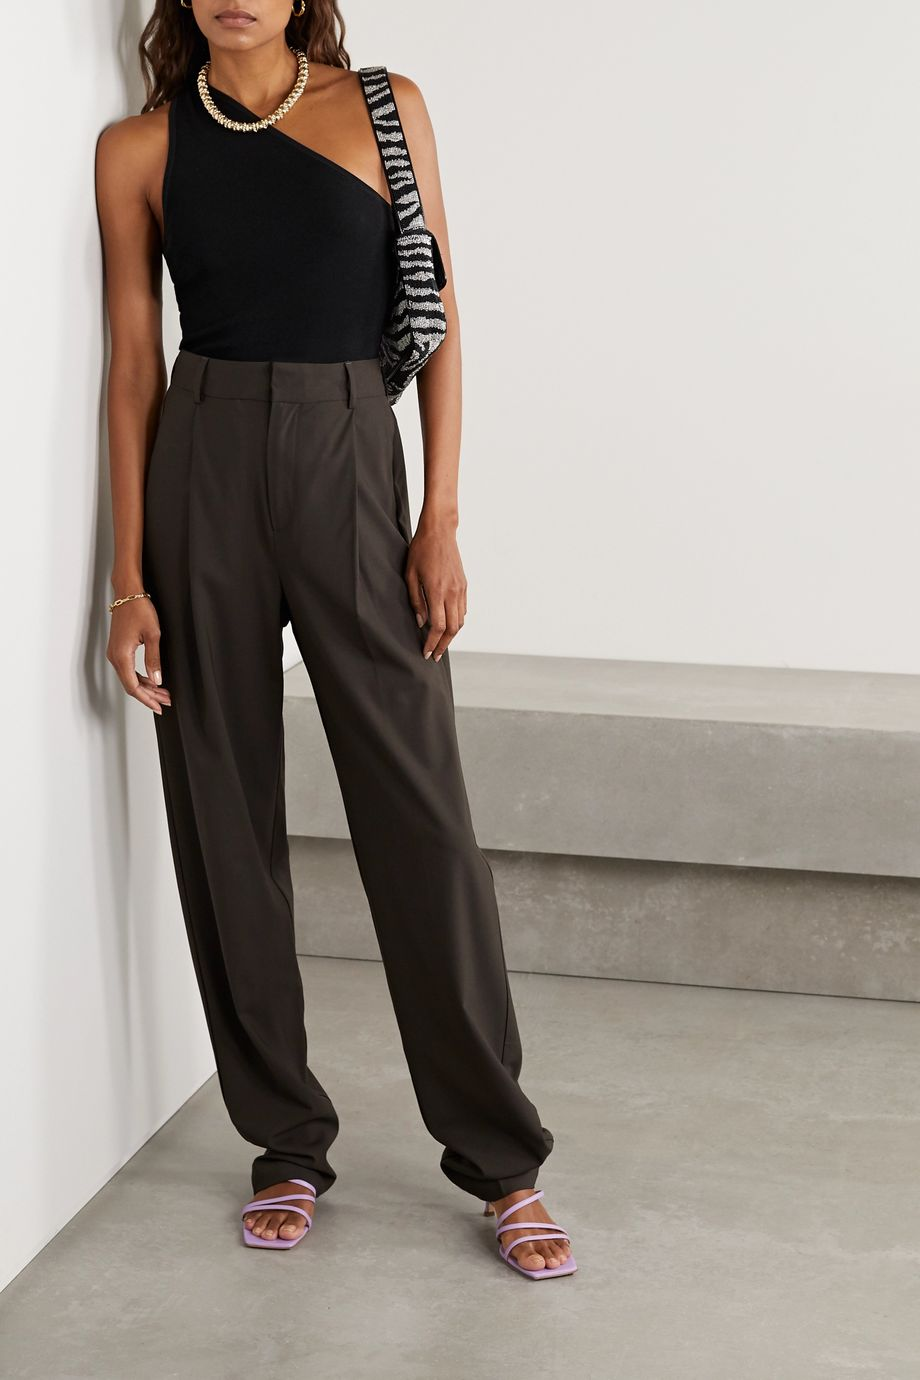 Tibi Giselle one-shoulder ribbed stretch-knit top